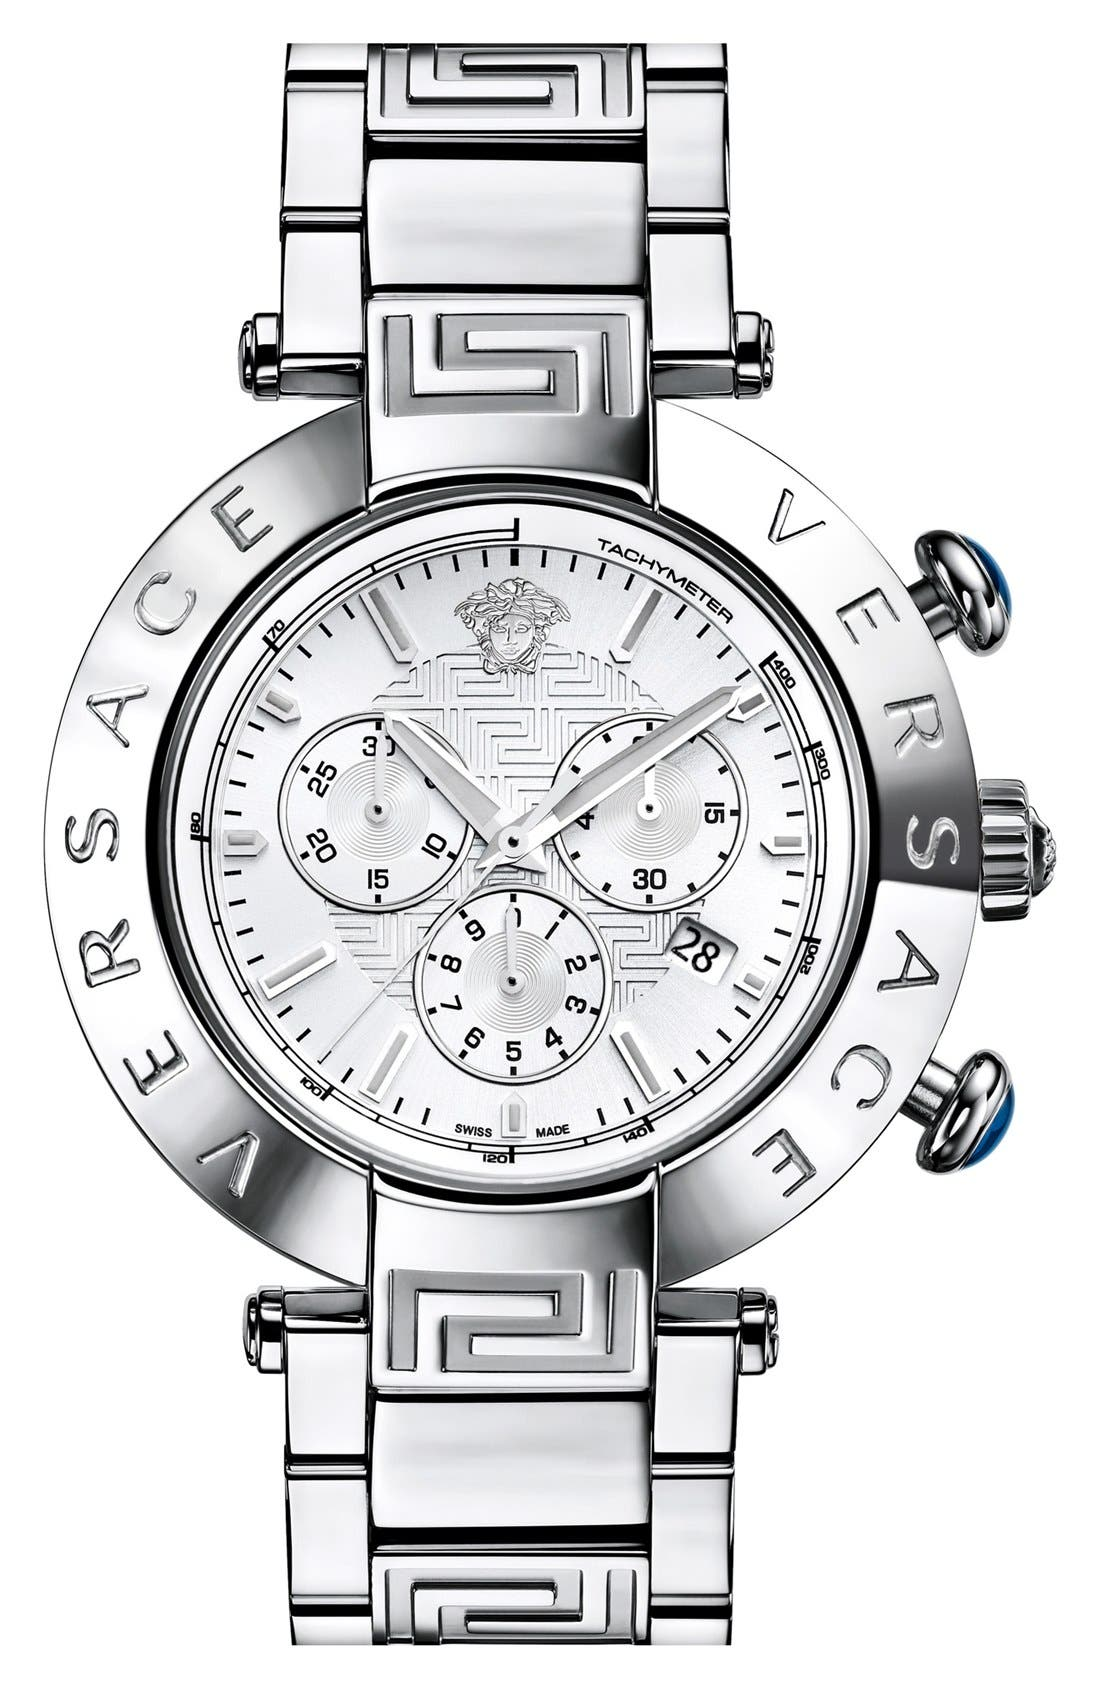 Alternate Image 1 Selected - Versace 'Reve' Chronograph Bracelet Watch, 46mm